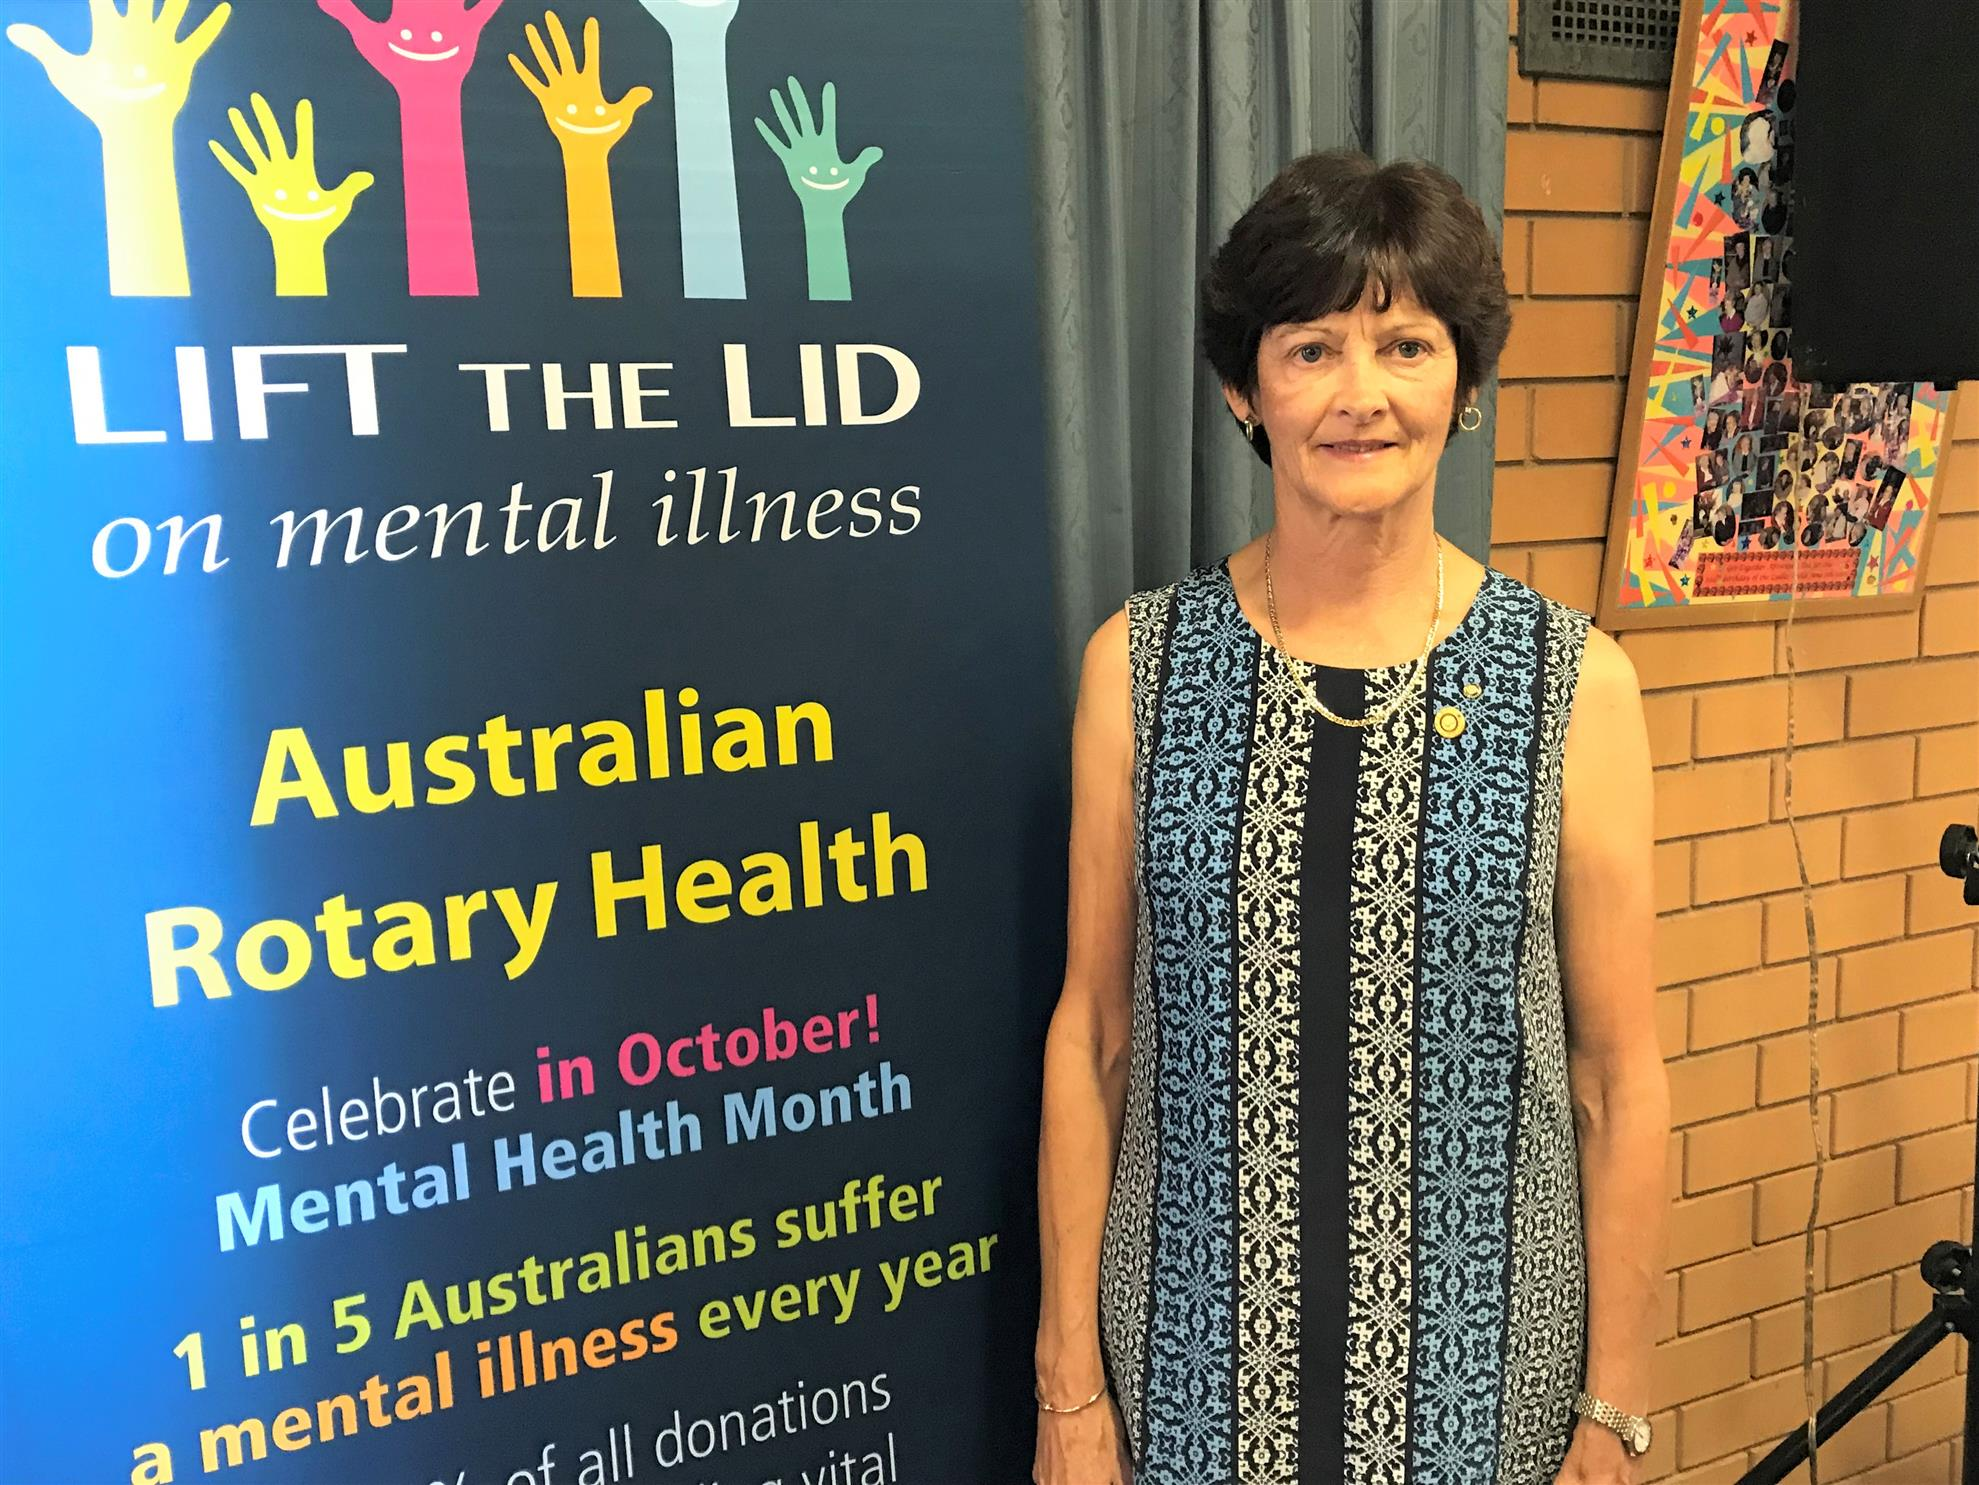 e57a2af74bf1 Rosemary Freeman District representative on Australia Rotary Health was  guest speaker.